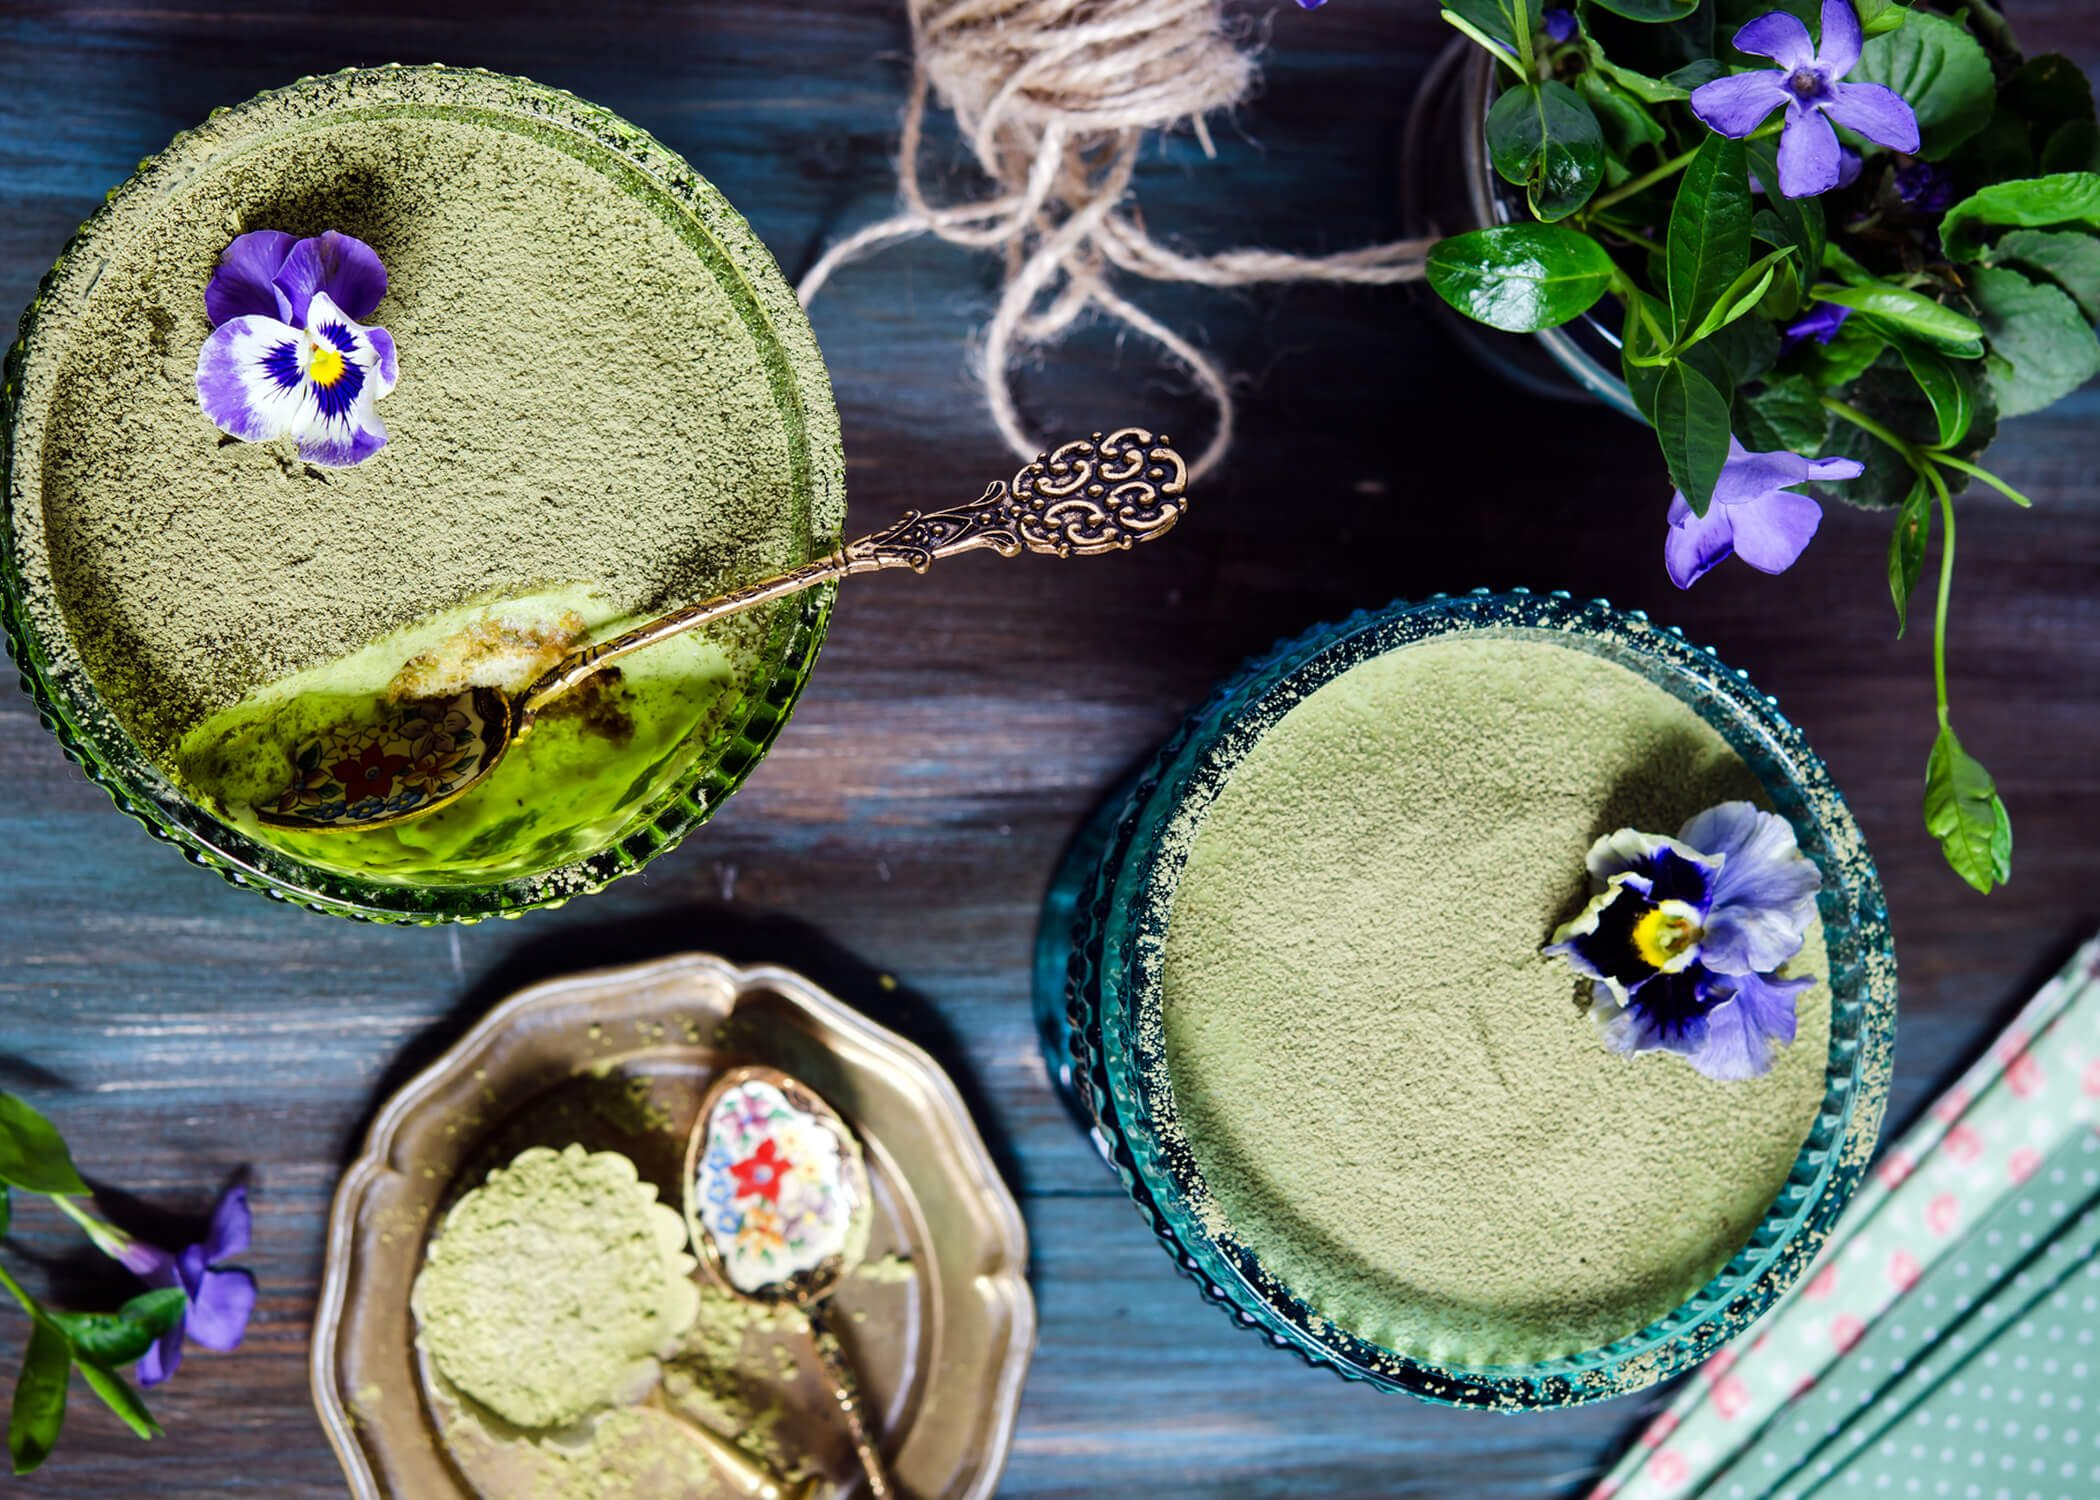 Cooking With Tea:  15 Matcha Dessert Recipes to Die For